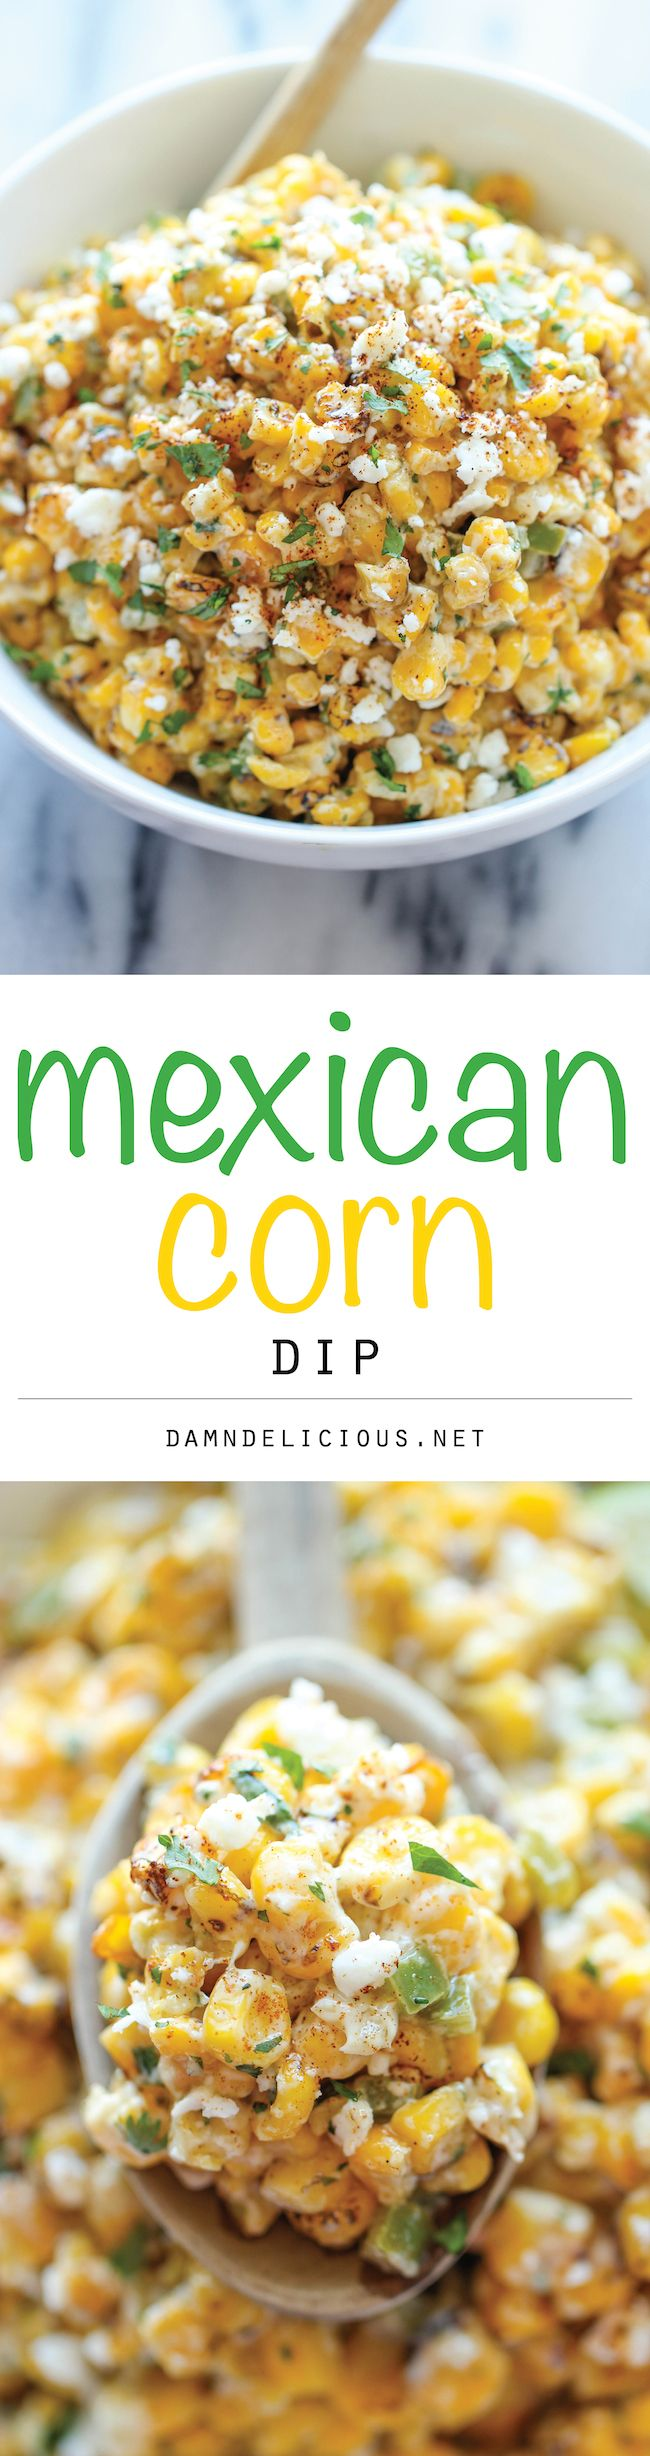 Mexican Corn Dip Recipe - The traditional Mexican street corn is turned into the best dip ever. It's so good, you won't even need the chips. Just grab a spoon!